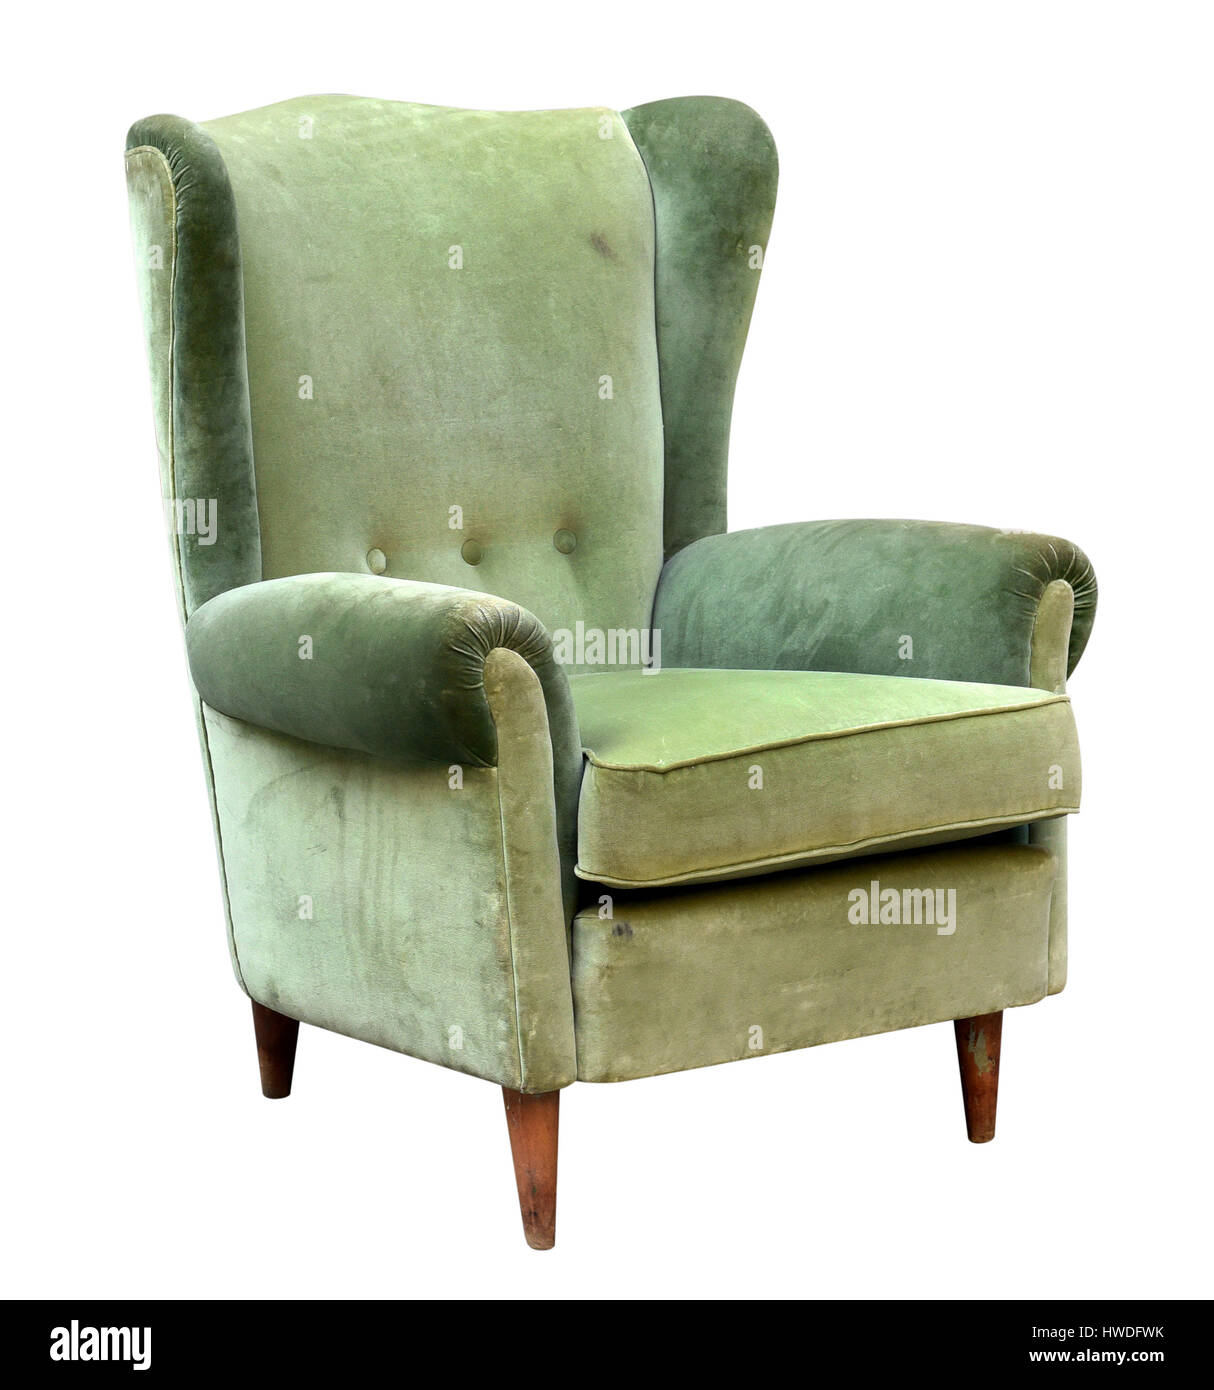 Vintage Upholstered Green Velvet Armchair With A High Wing Back Isolated  Over White In A Three Quarter View